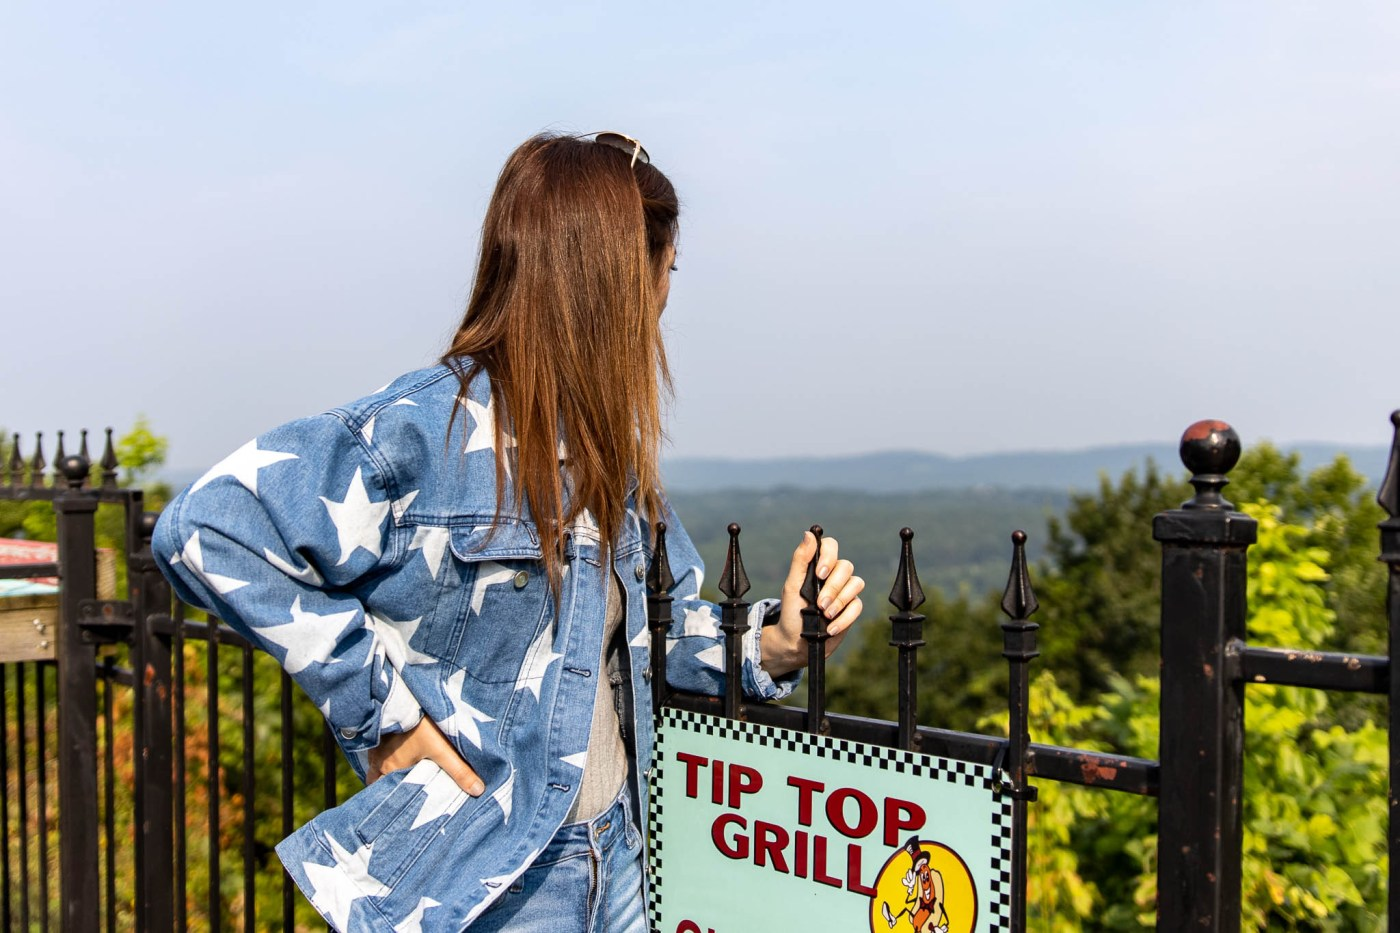 Tip Top Grill